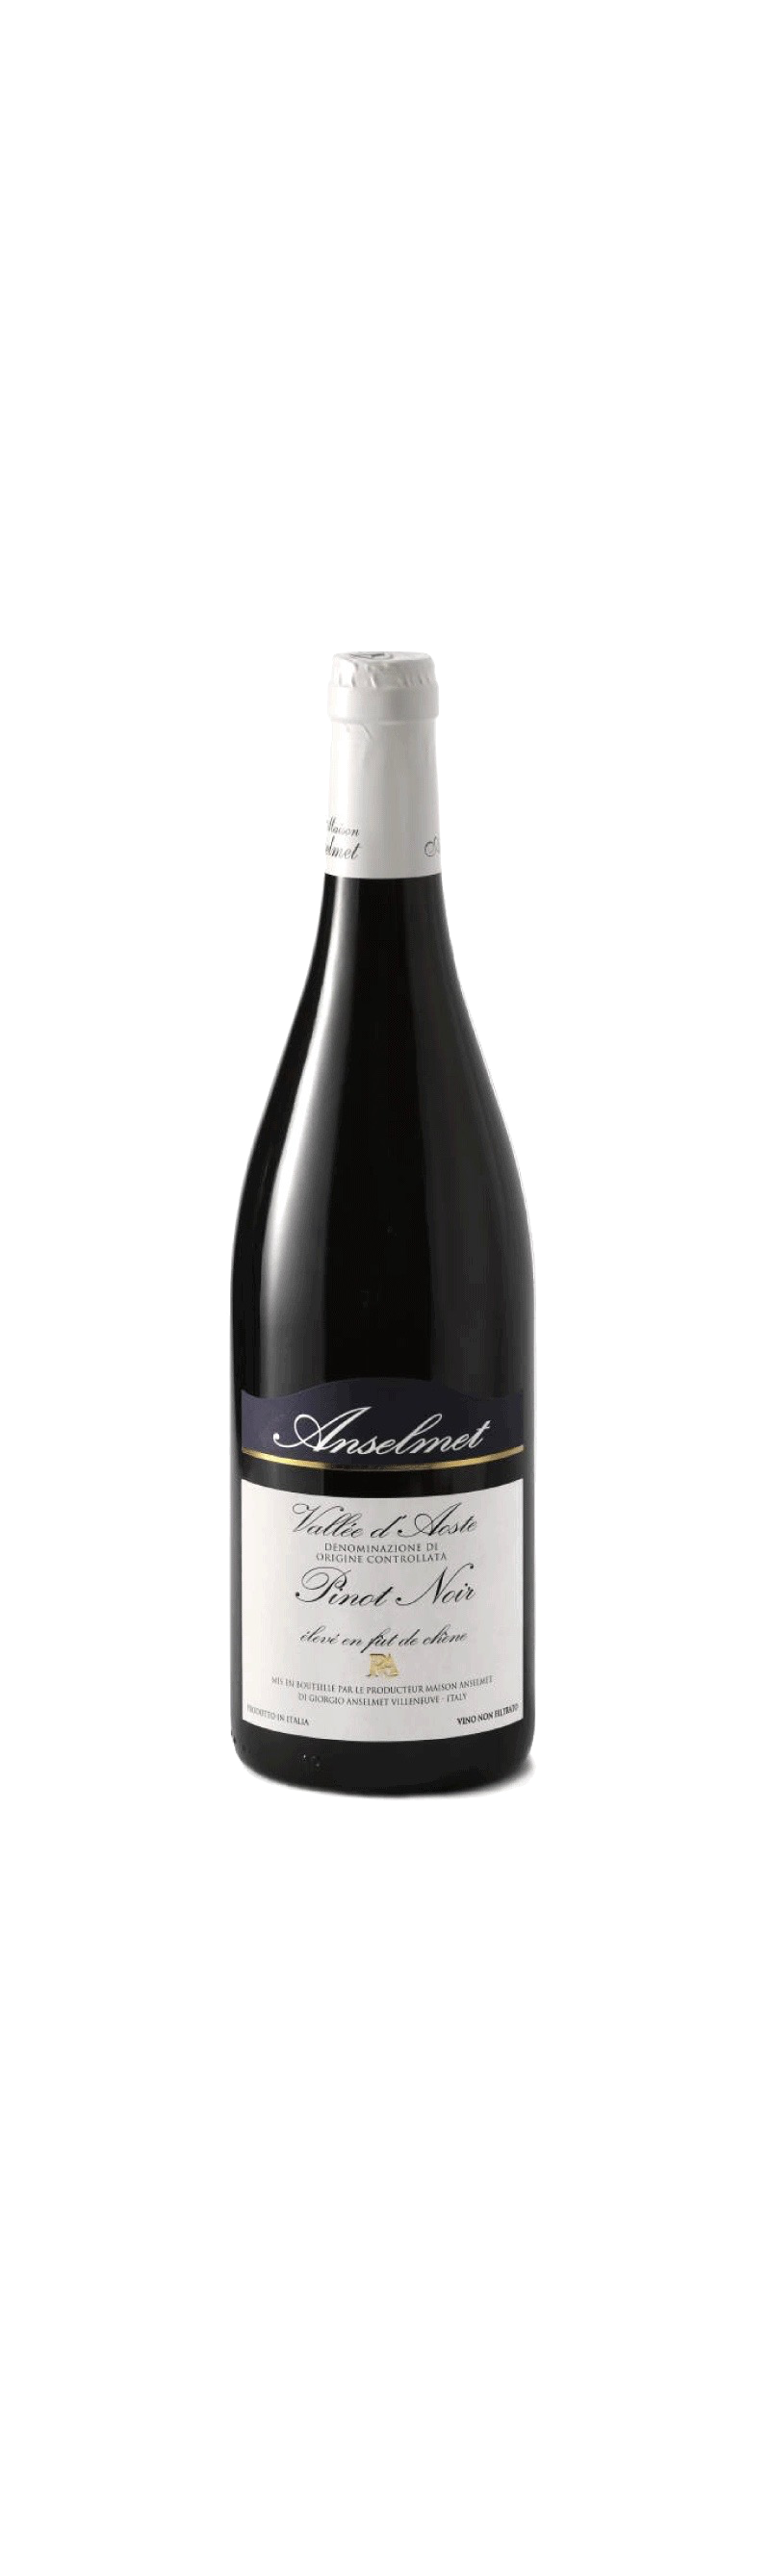 Valle d'Aosta Pinot Noir Doc Tradition